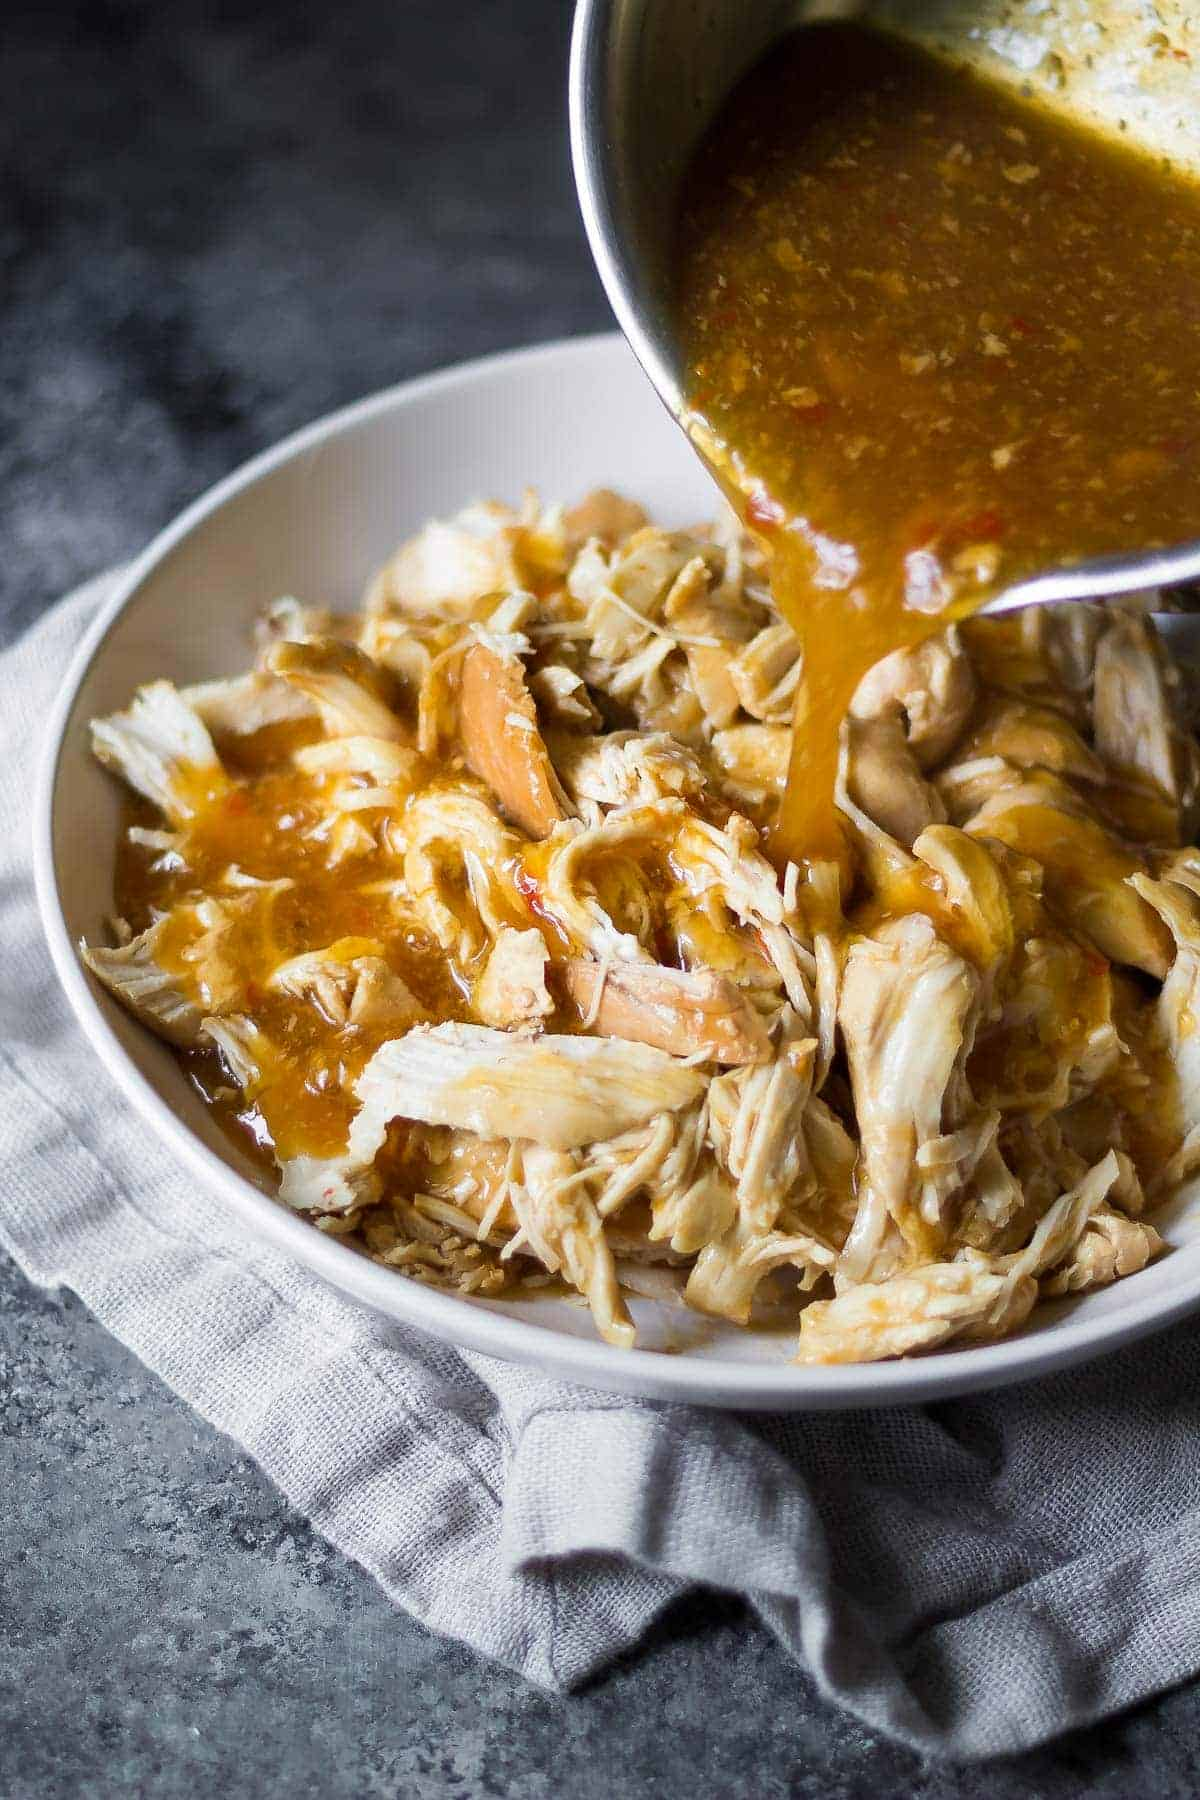 Remove the chicken and chop into pieces or shred into pieces, then return chicken to the slow cooker and give everything a few stirs. Stir in the cream cheese until fully melted and combined. Taste and add more salt or add ground black pepper to taste. Cover the .